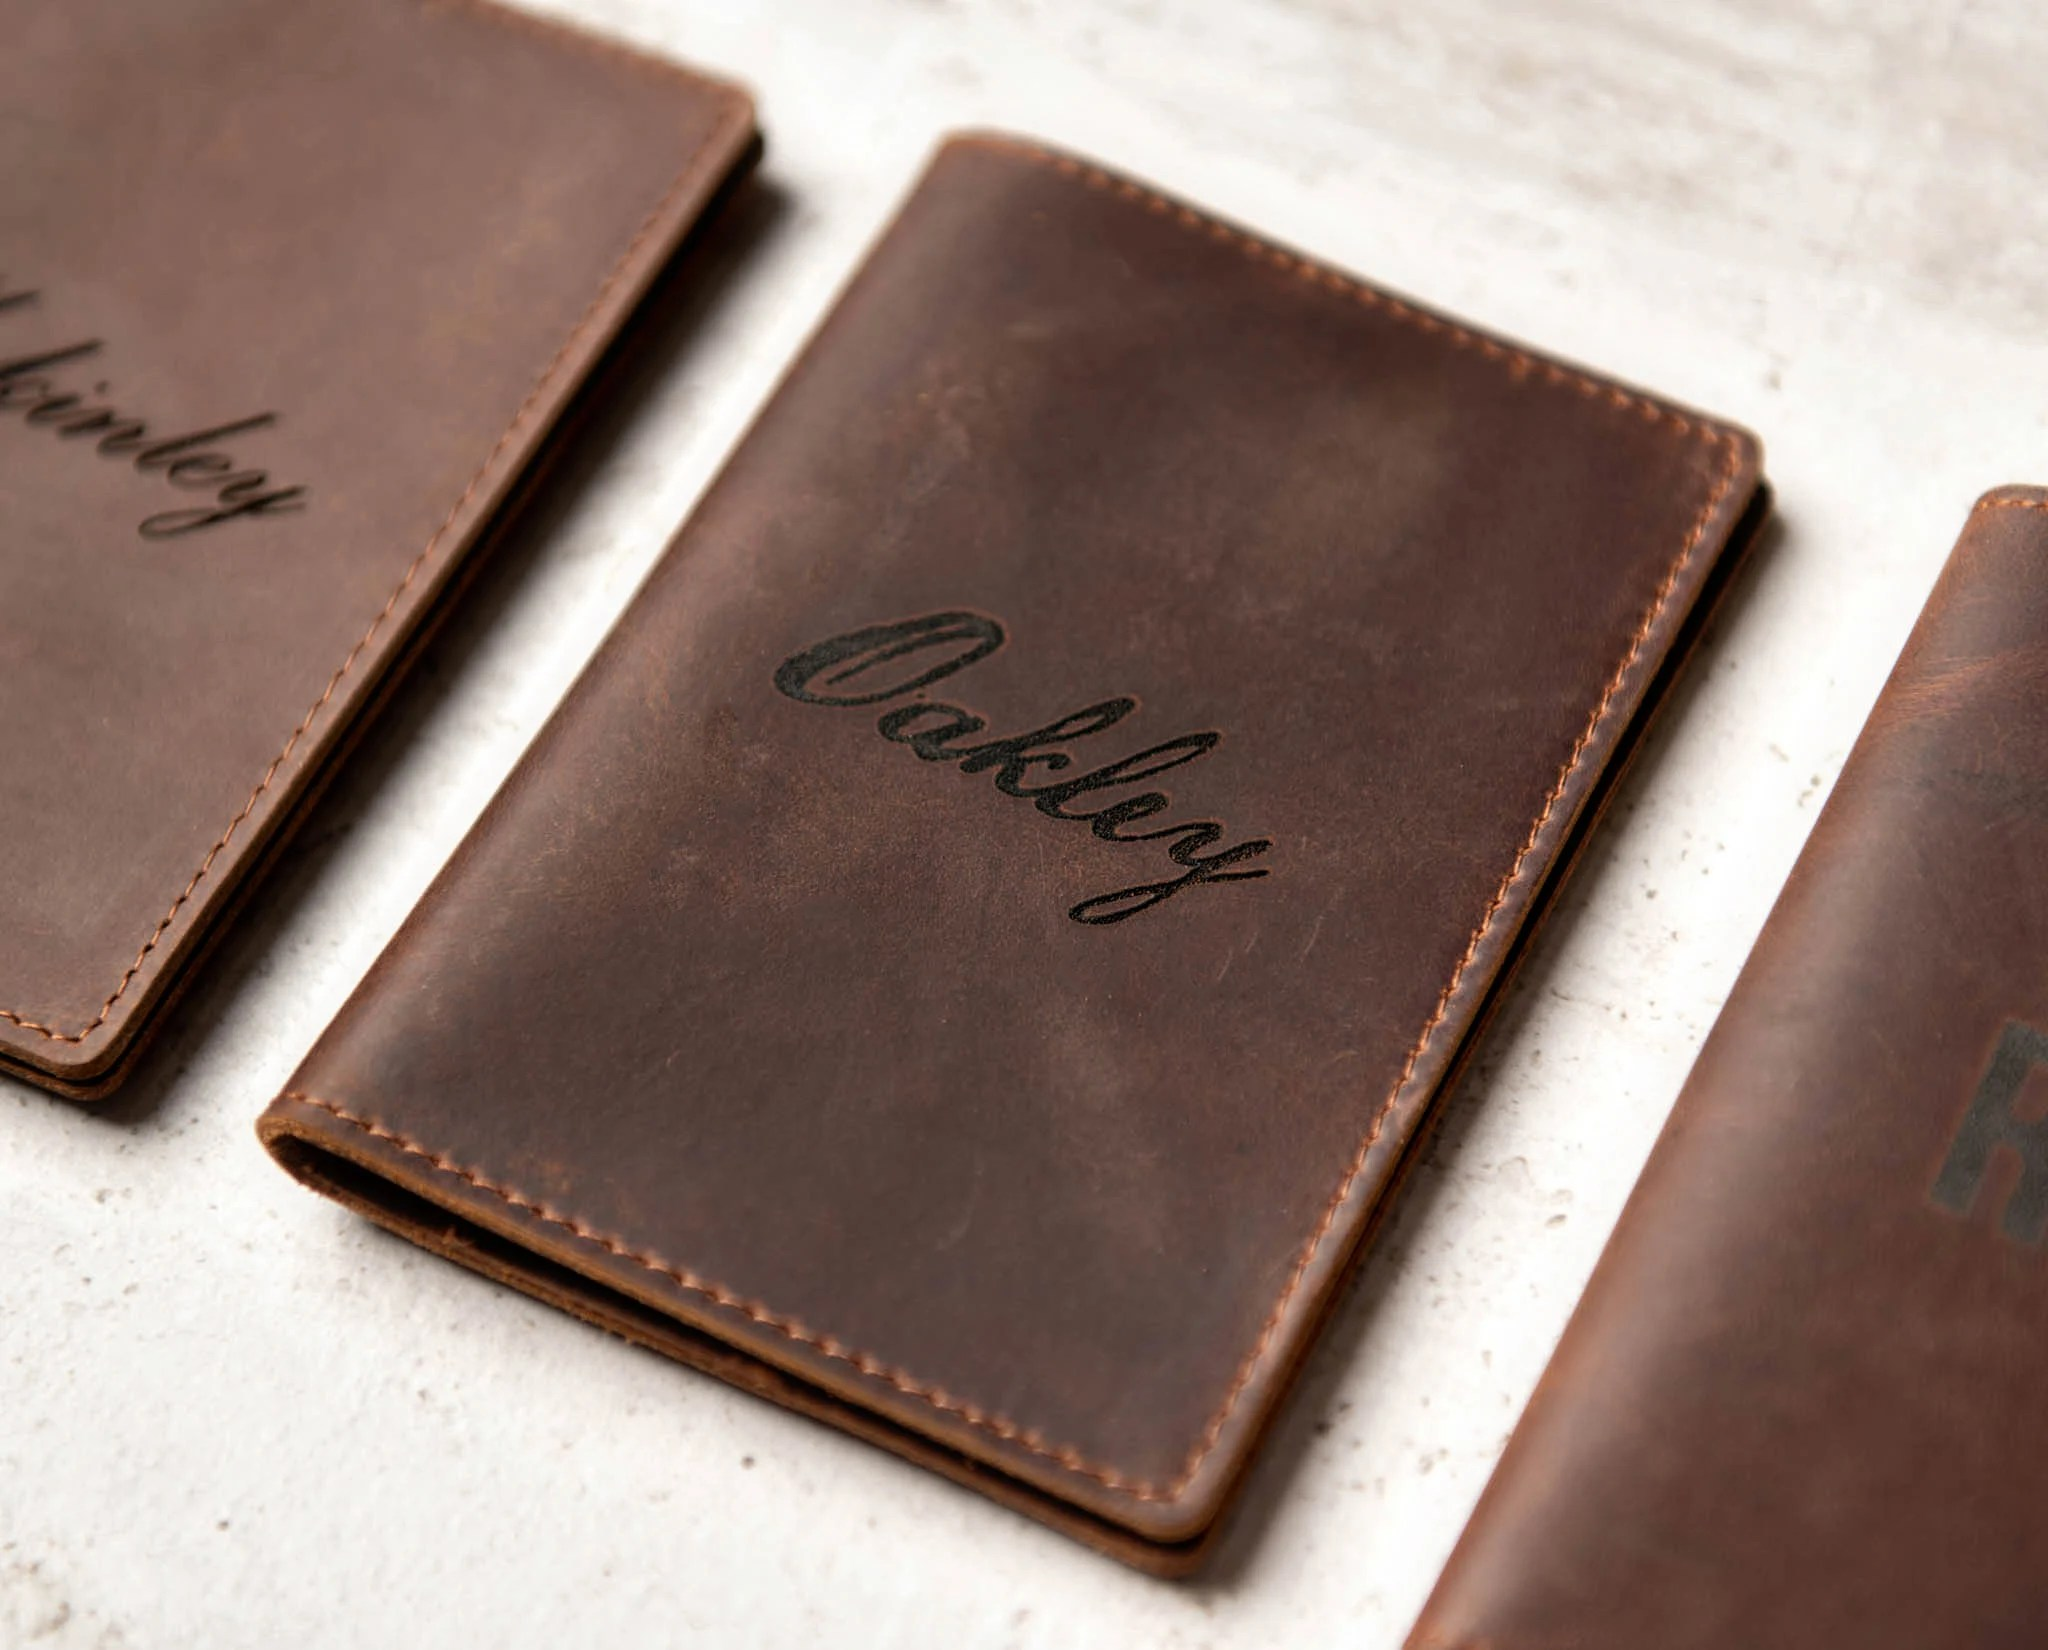 Personalized Leather Passport Cover Holder by Left Coast image 7